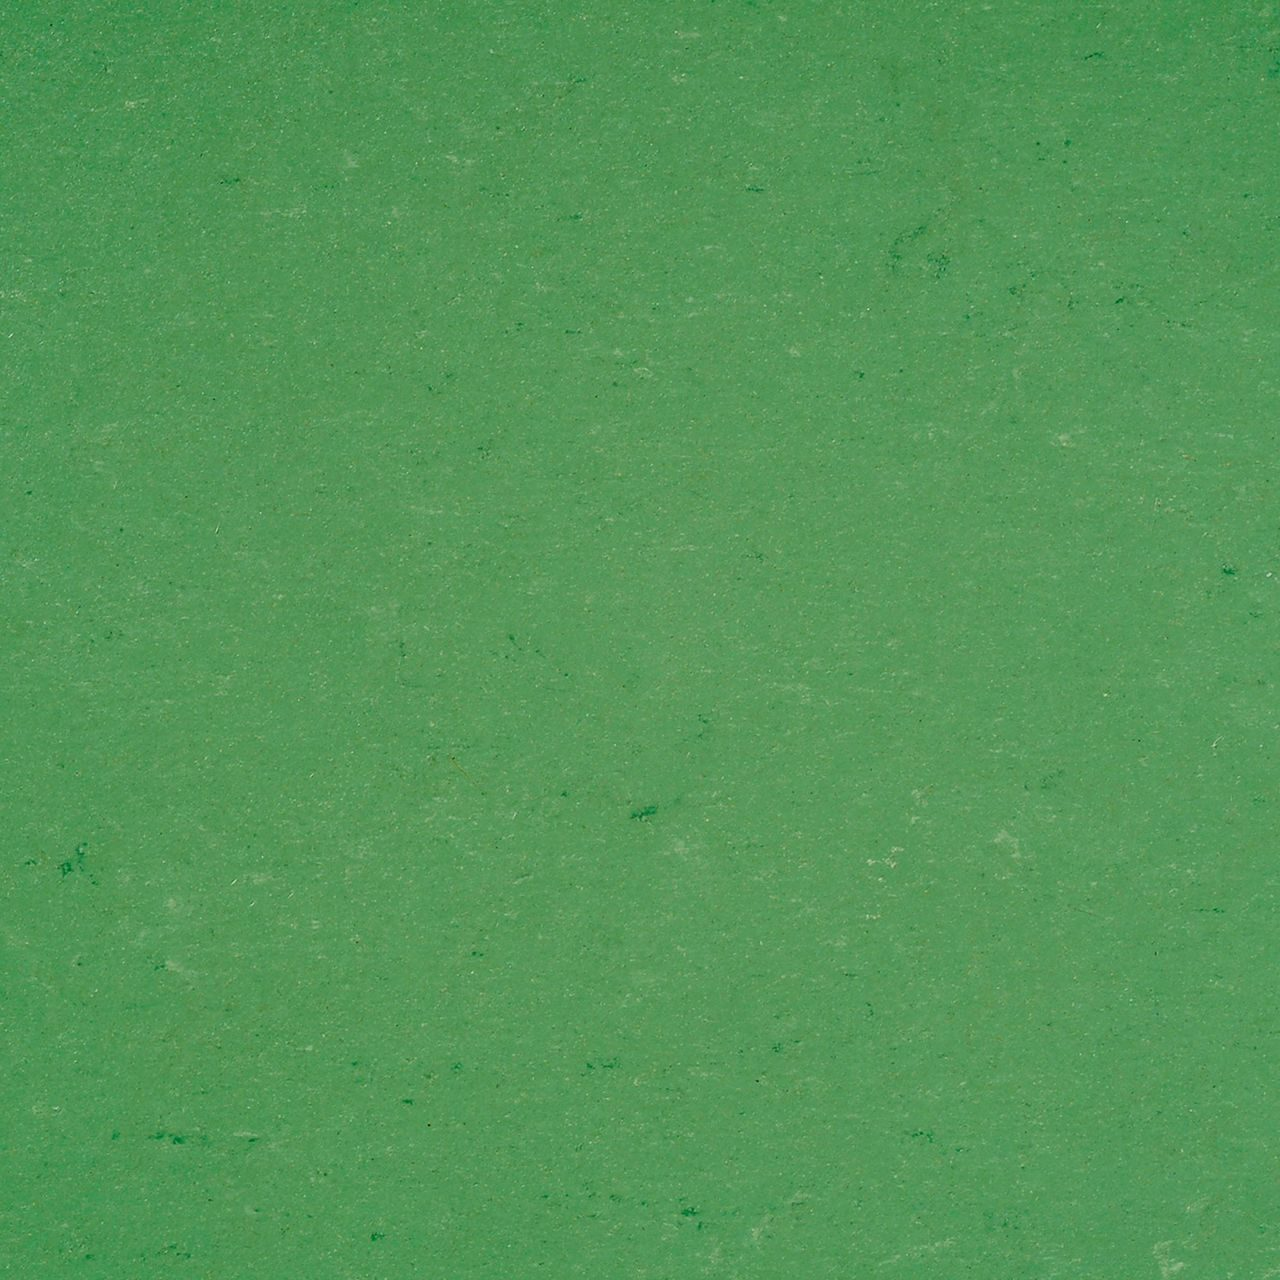 Colorette LPX 131-006 vivid green